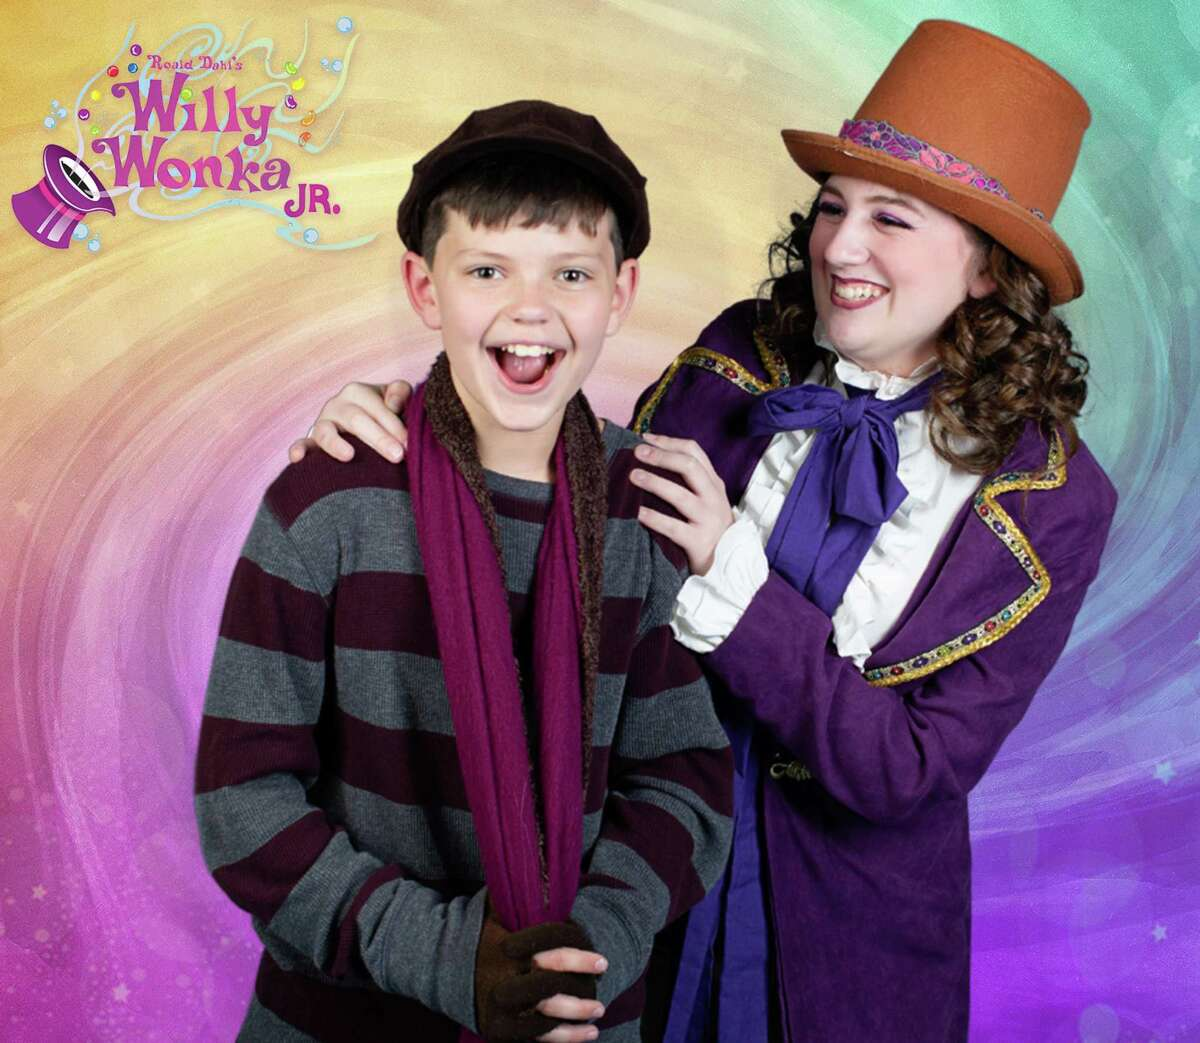 """Kaitlyn Whitmore, 15, plays Willy Wonka and Kai Desel, 11, plays Charlie Bucket in Christian Youth Theater's """"Willy Wonka Jr."""" Nov. 19-21 at the Crighton Theatre."""